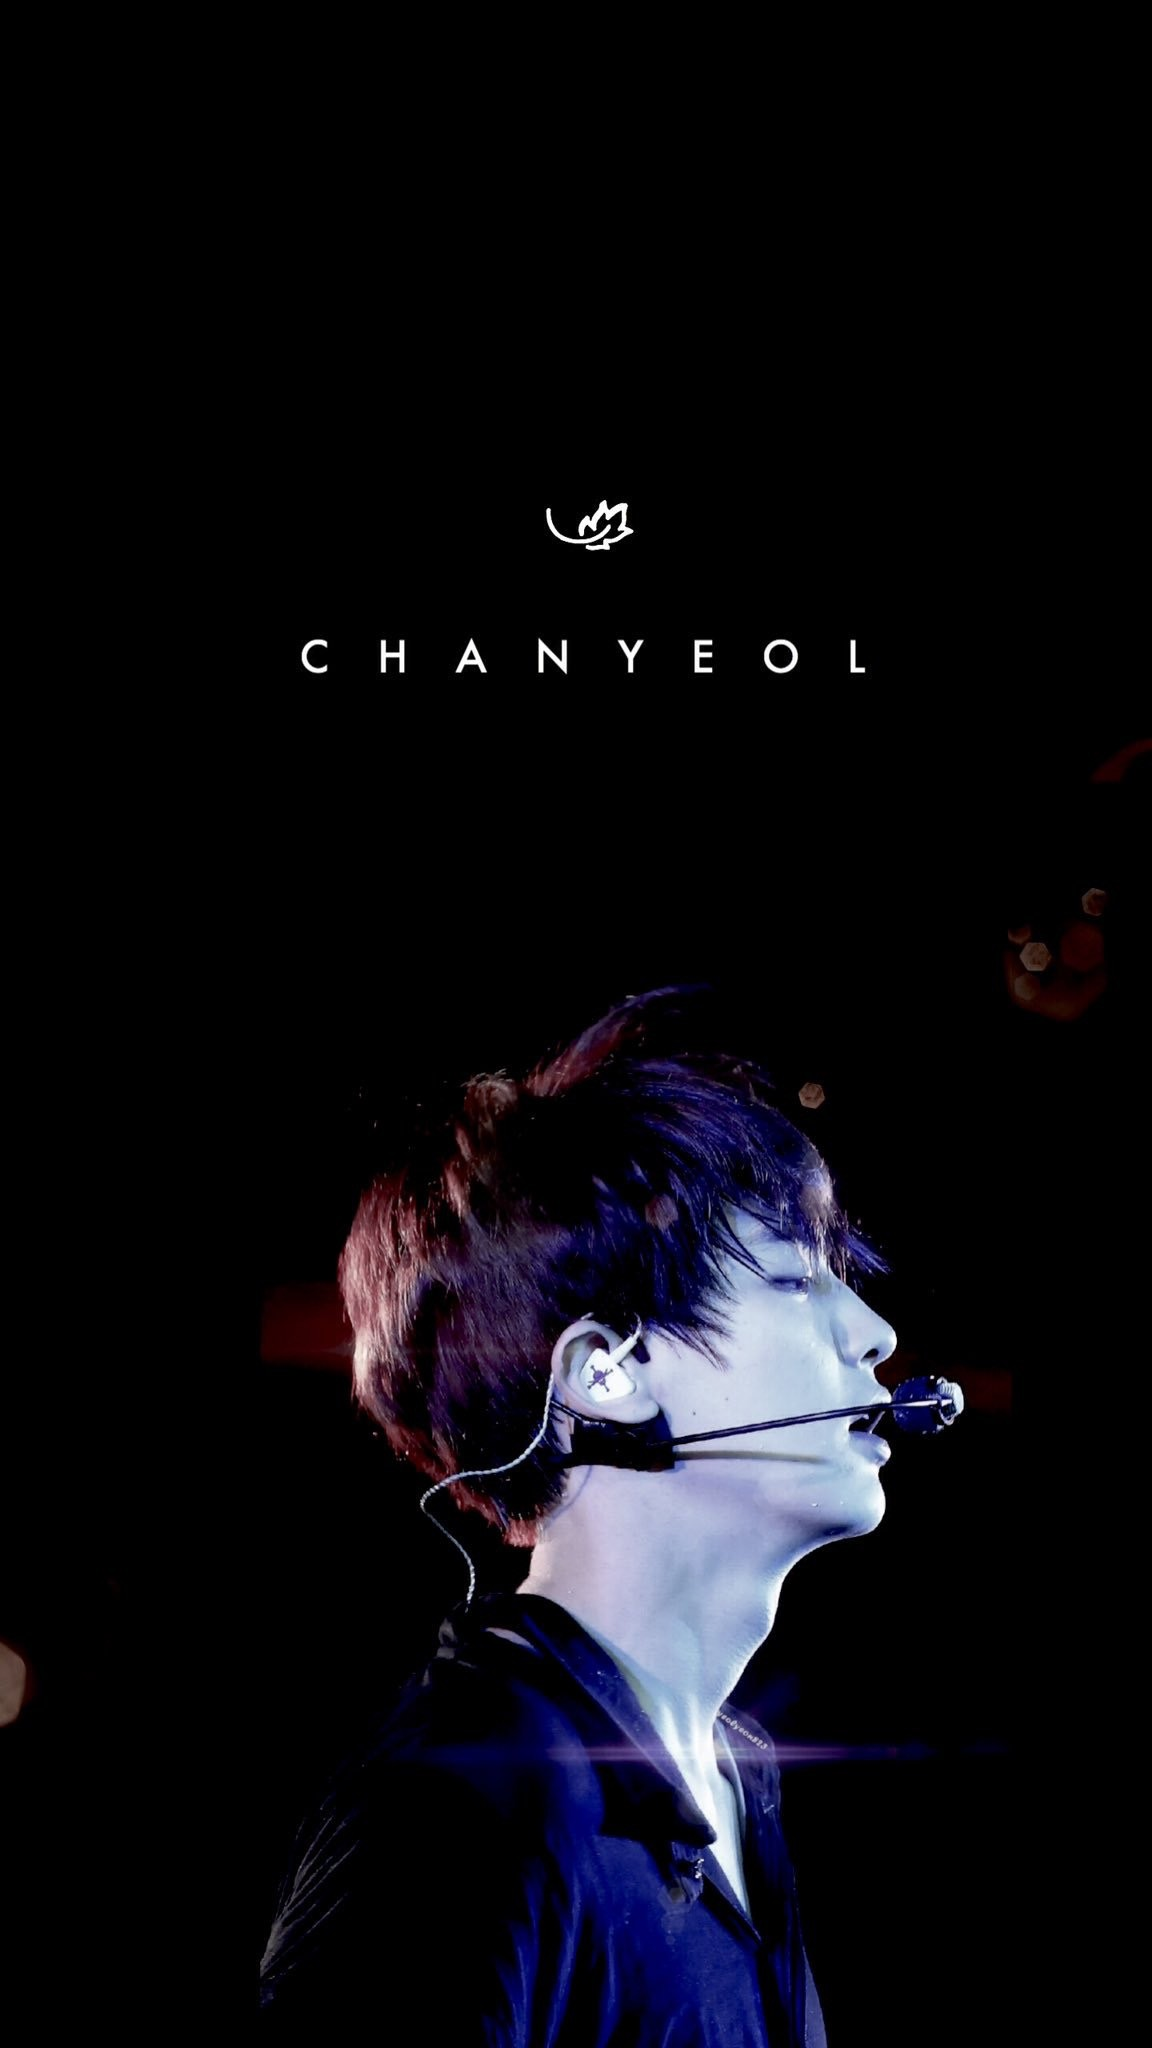 Chanyeol Wallpapers (78+ images)